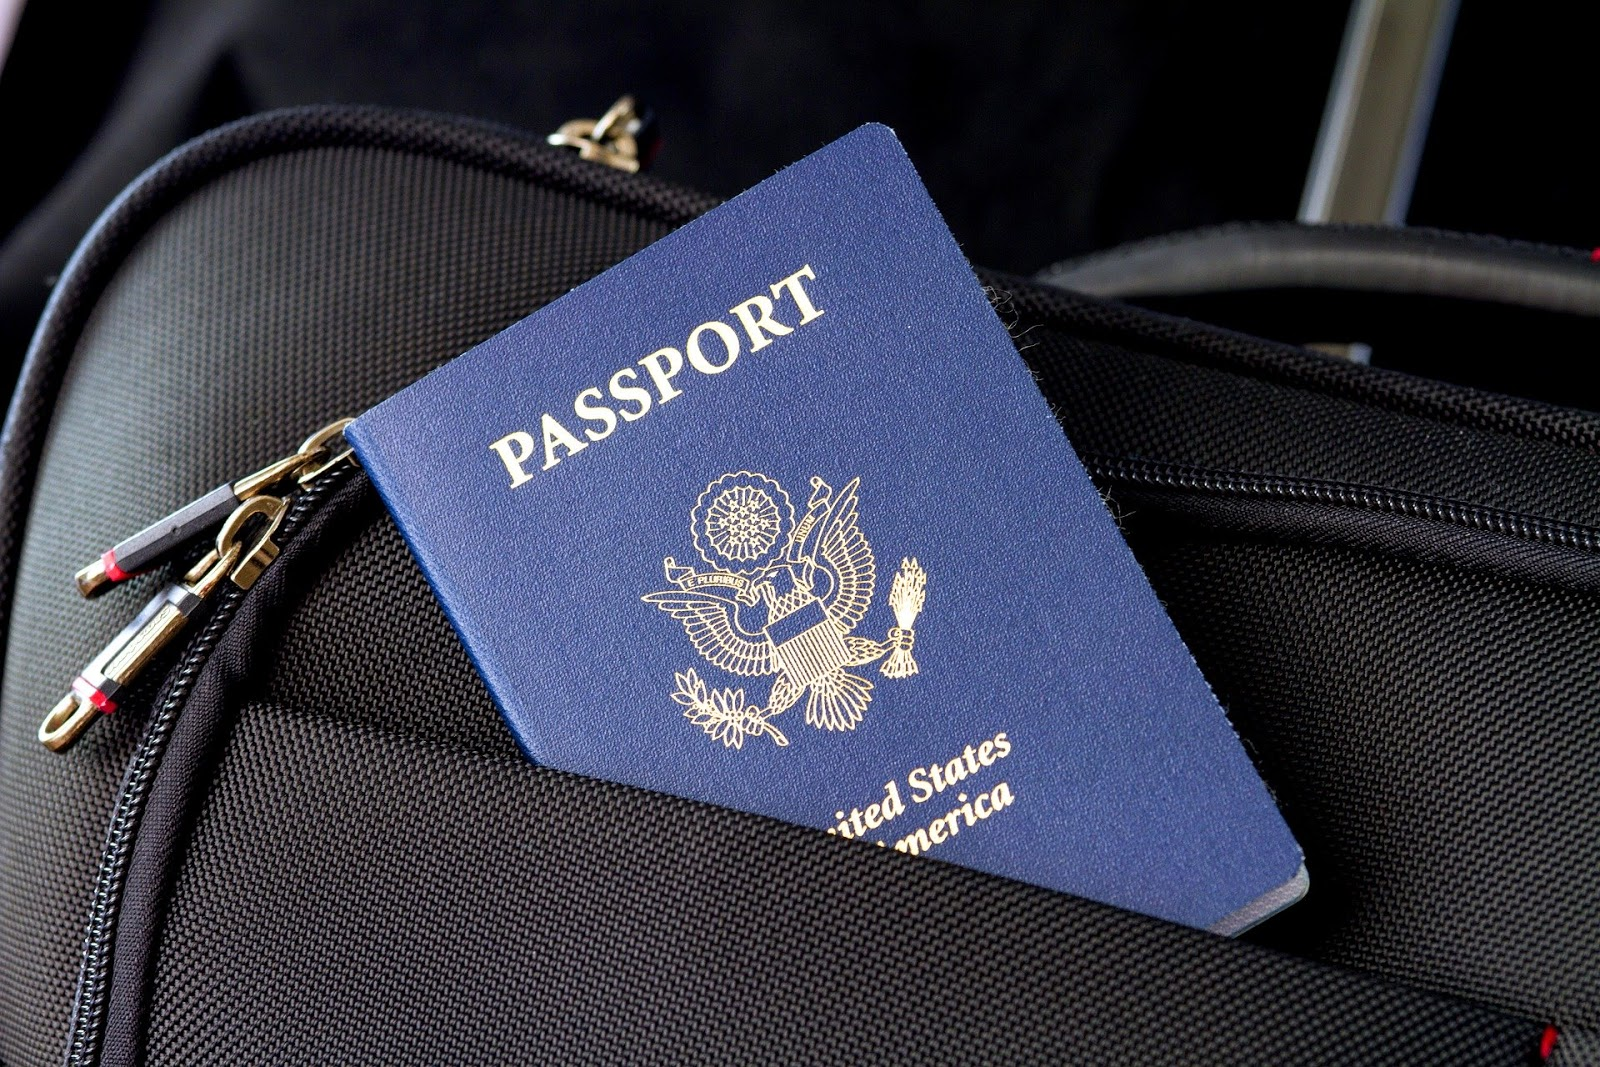 A passport sticking out of a black suitcase - the first step in learning how to travel abroad